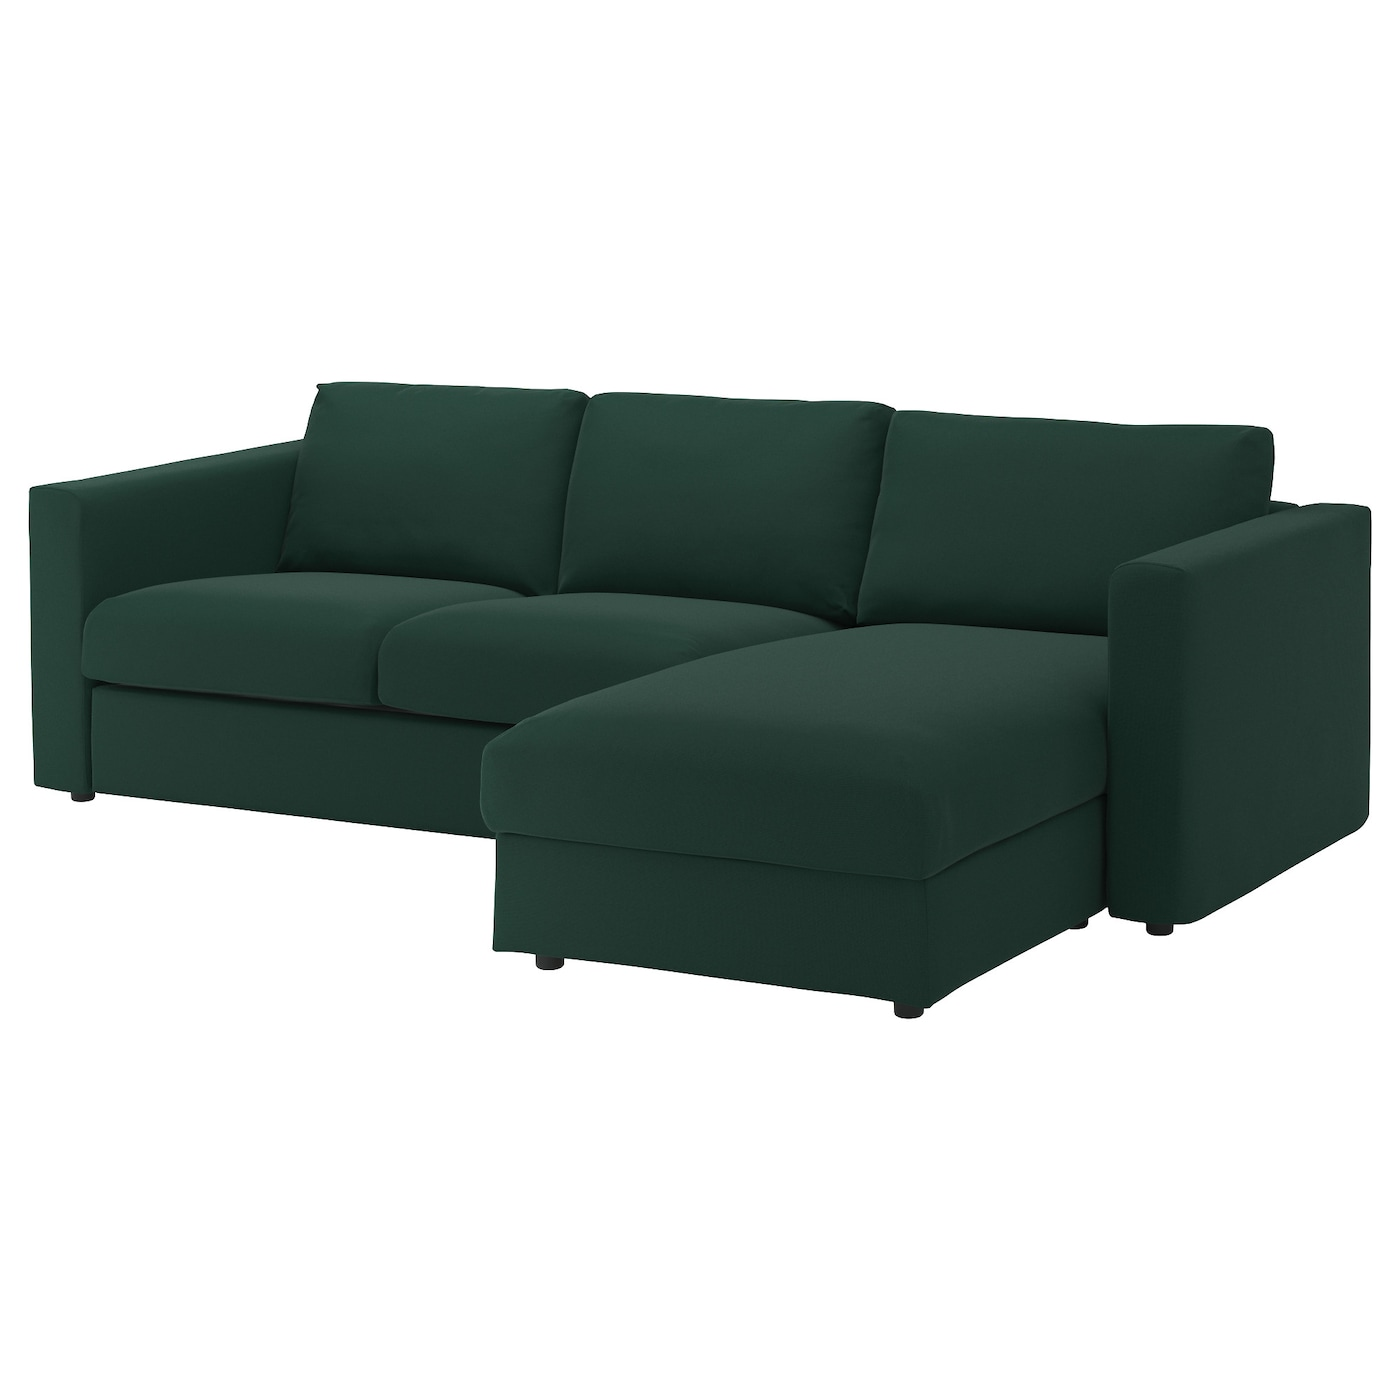 Vimle 3 Seat Sofa With Chaise Longue Gunnared Dark Green